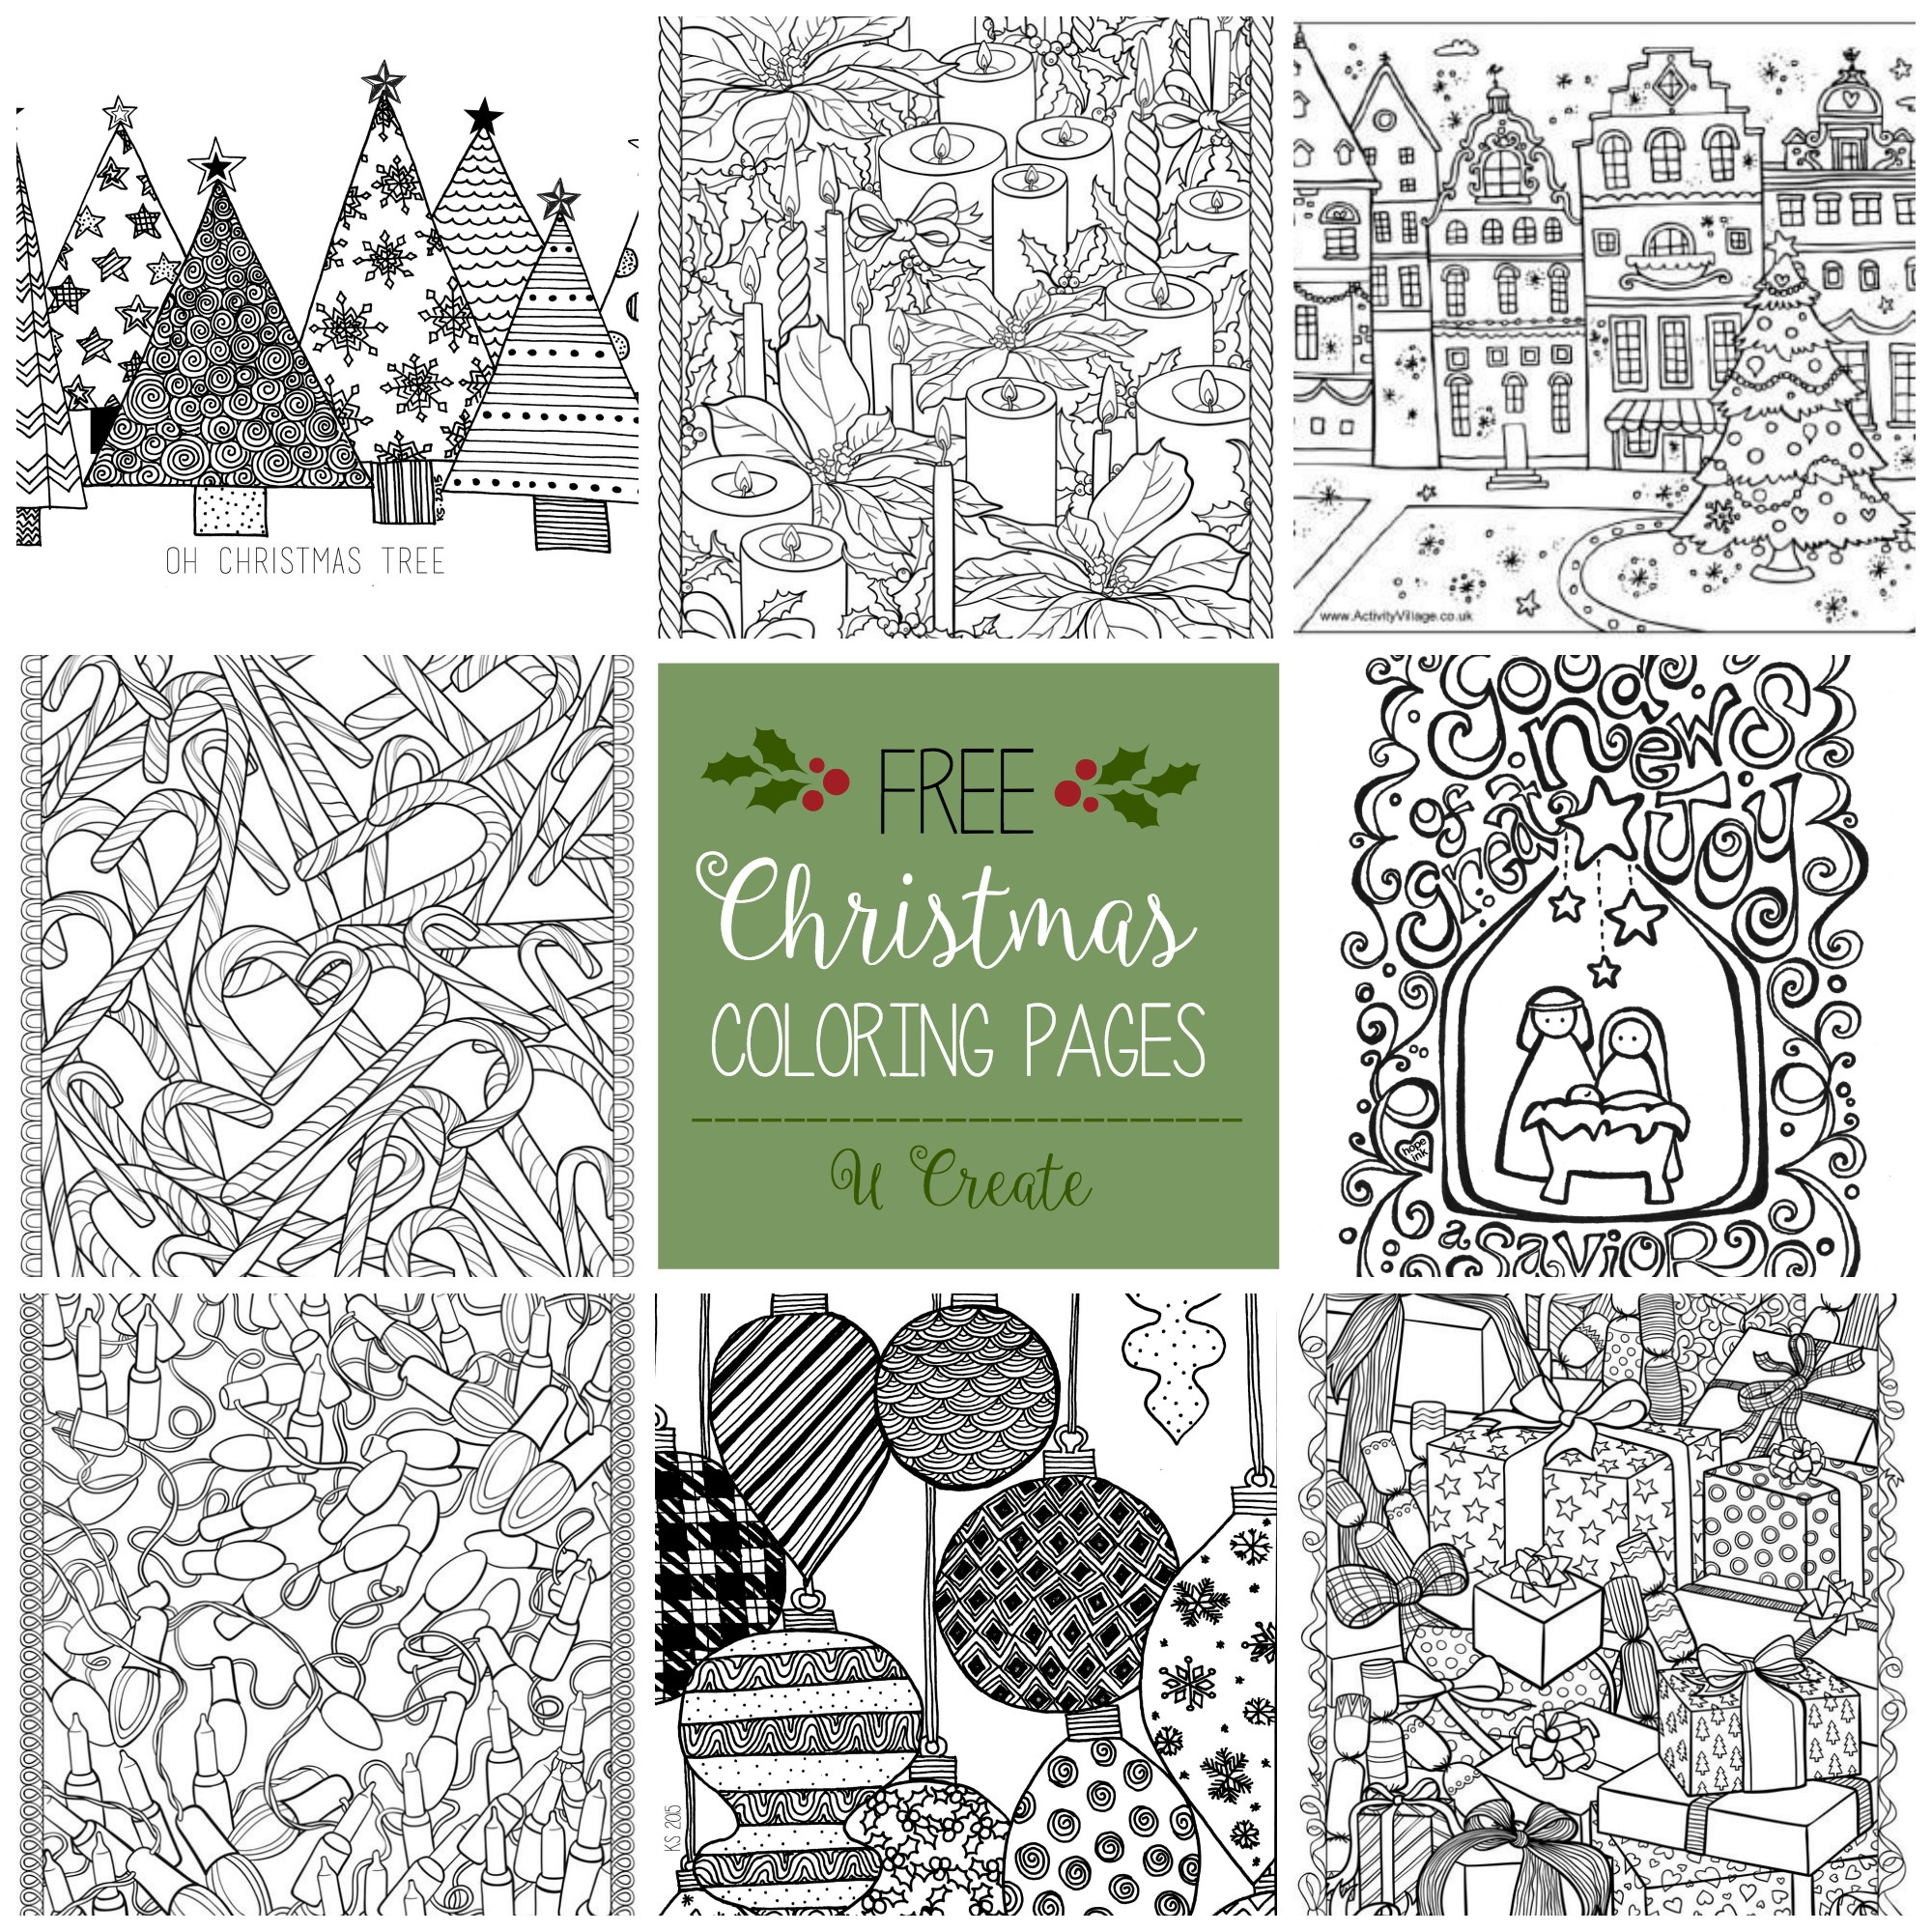 graphic relating to Free Printable Holiday Coloring Pages named Cost-free Xmas Grownup Coloring Internet pages - U Generate